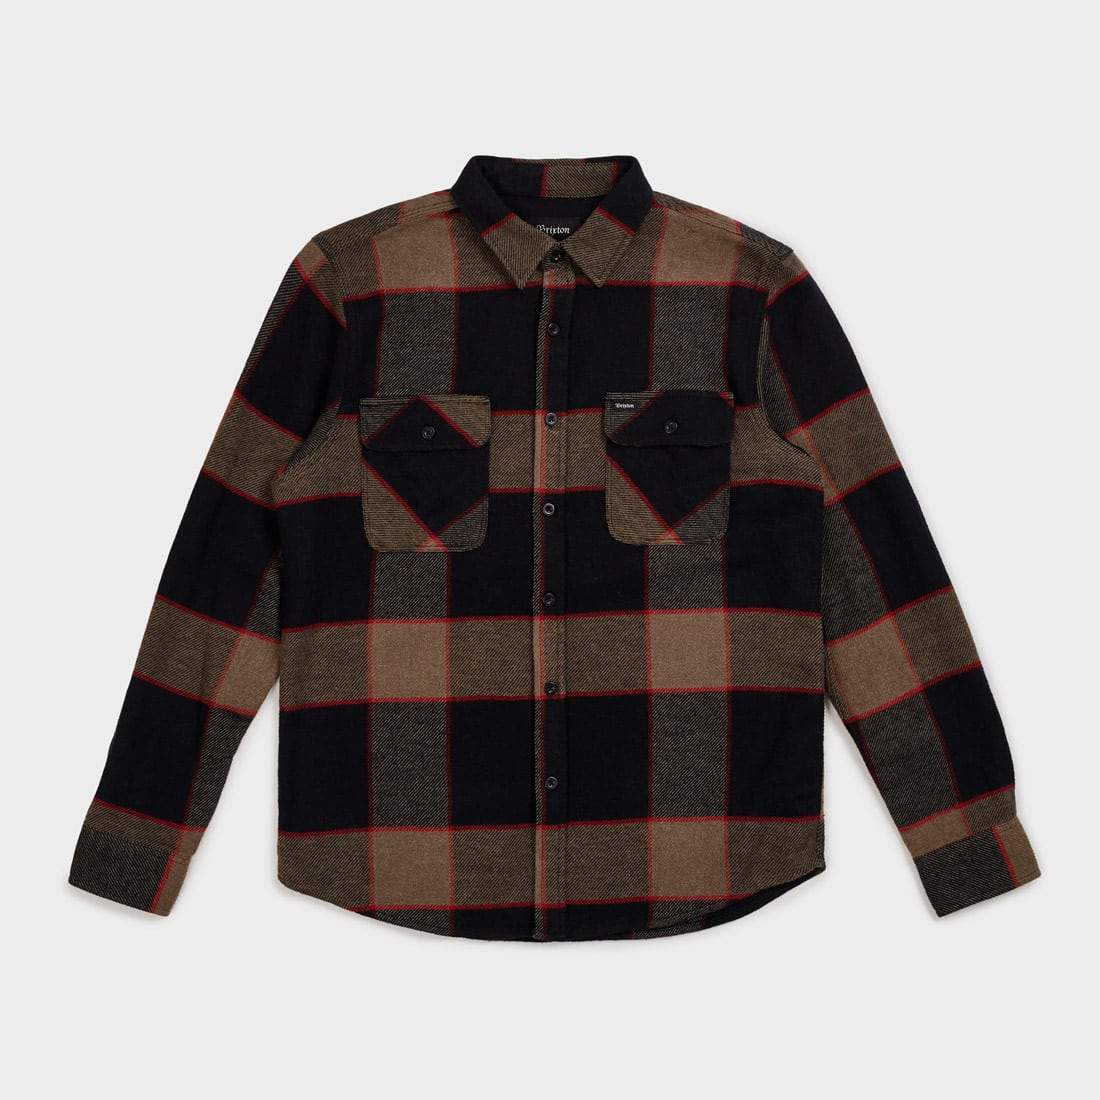 Brixton Bowery Flannel Plaid Heather Grey/Charcoal